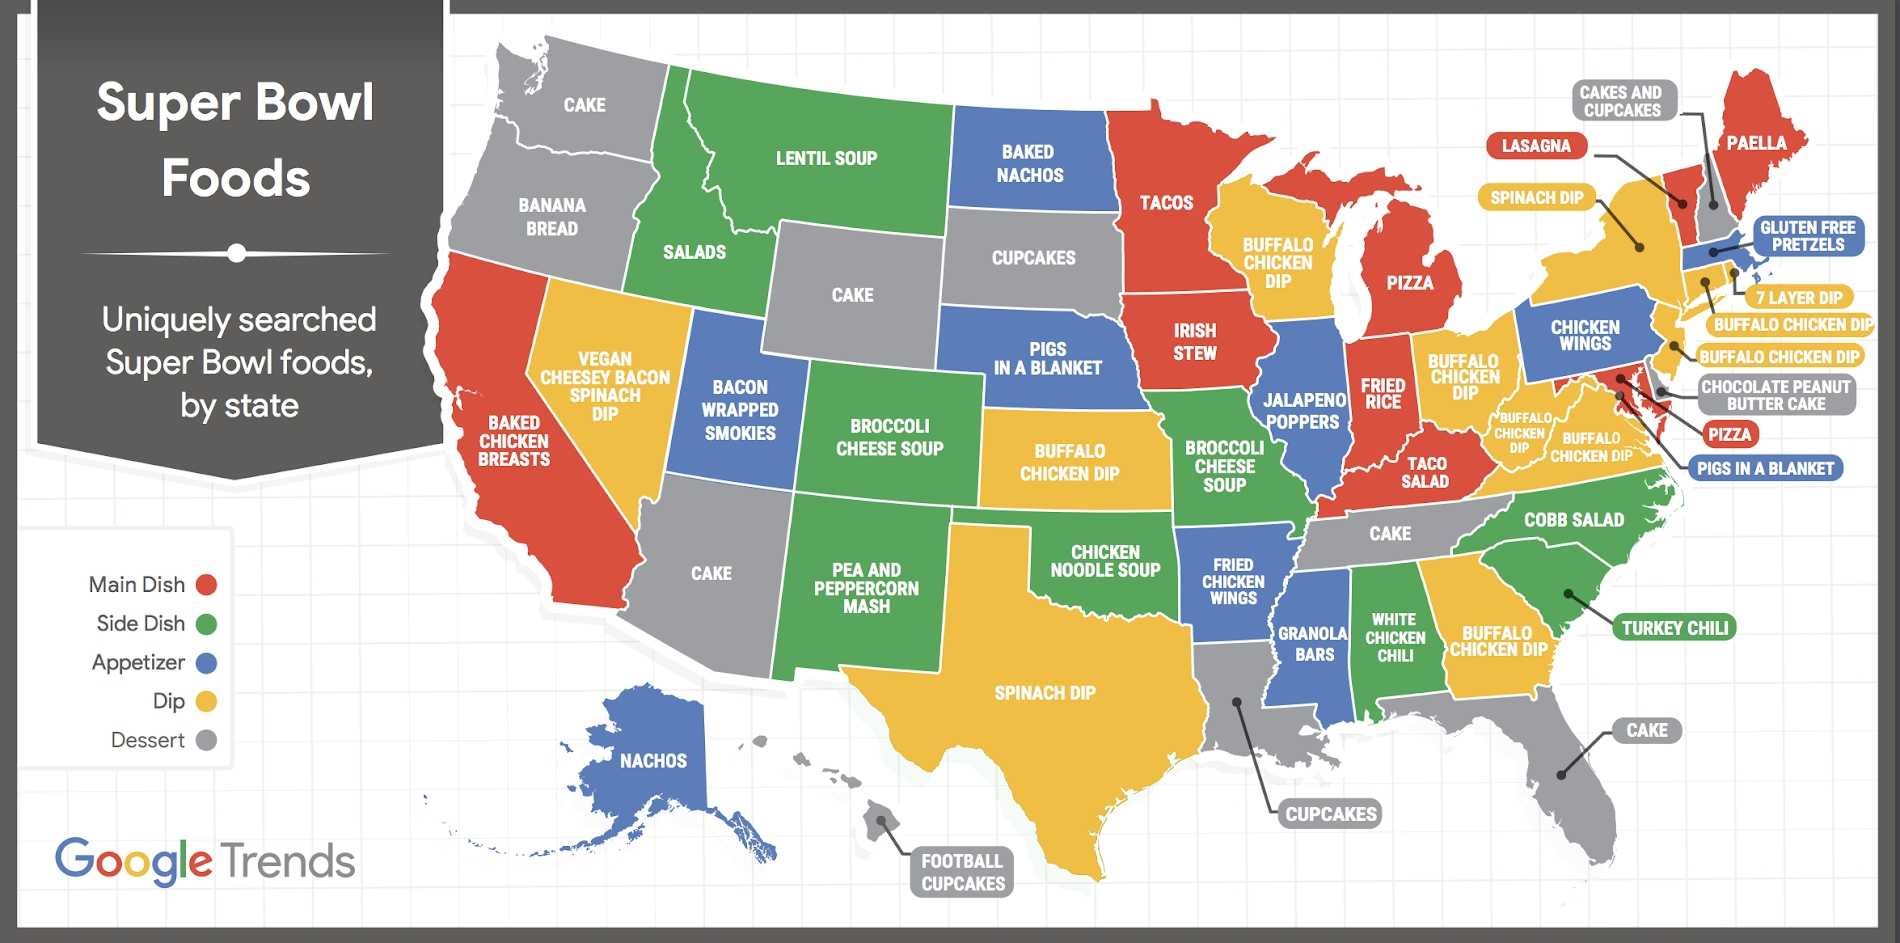 Google Says This Is The Most Searched Super Bowl Food In within Map Of Super Bowl Foods